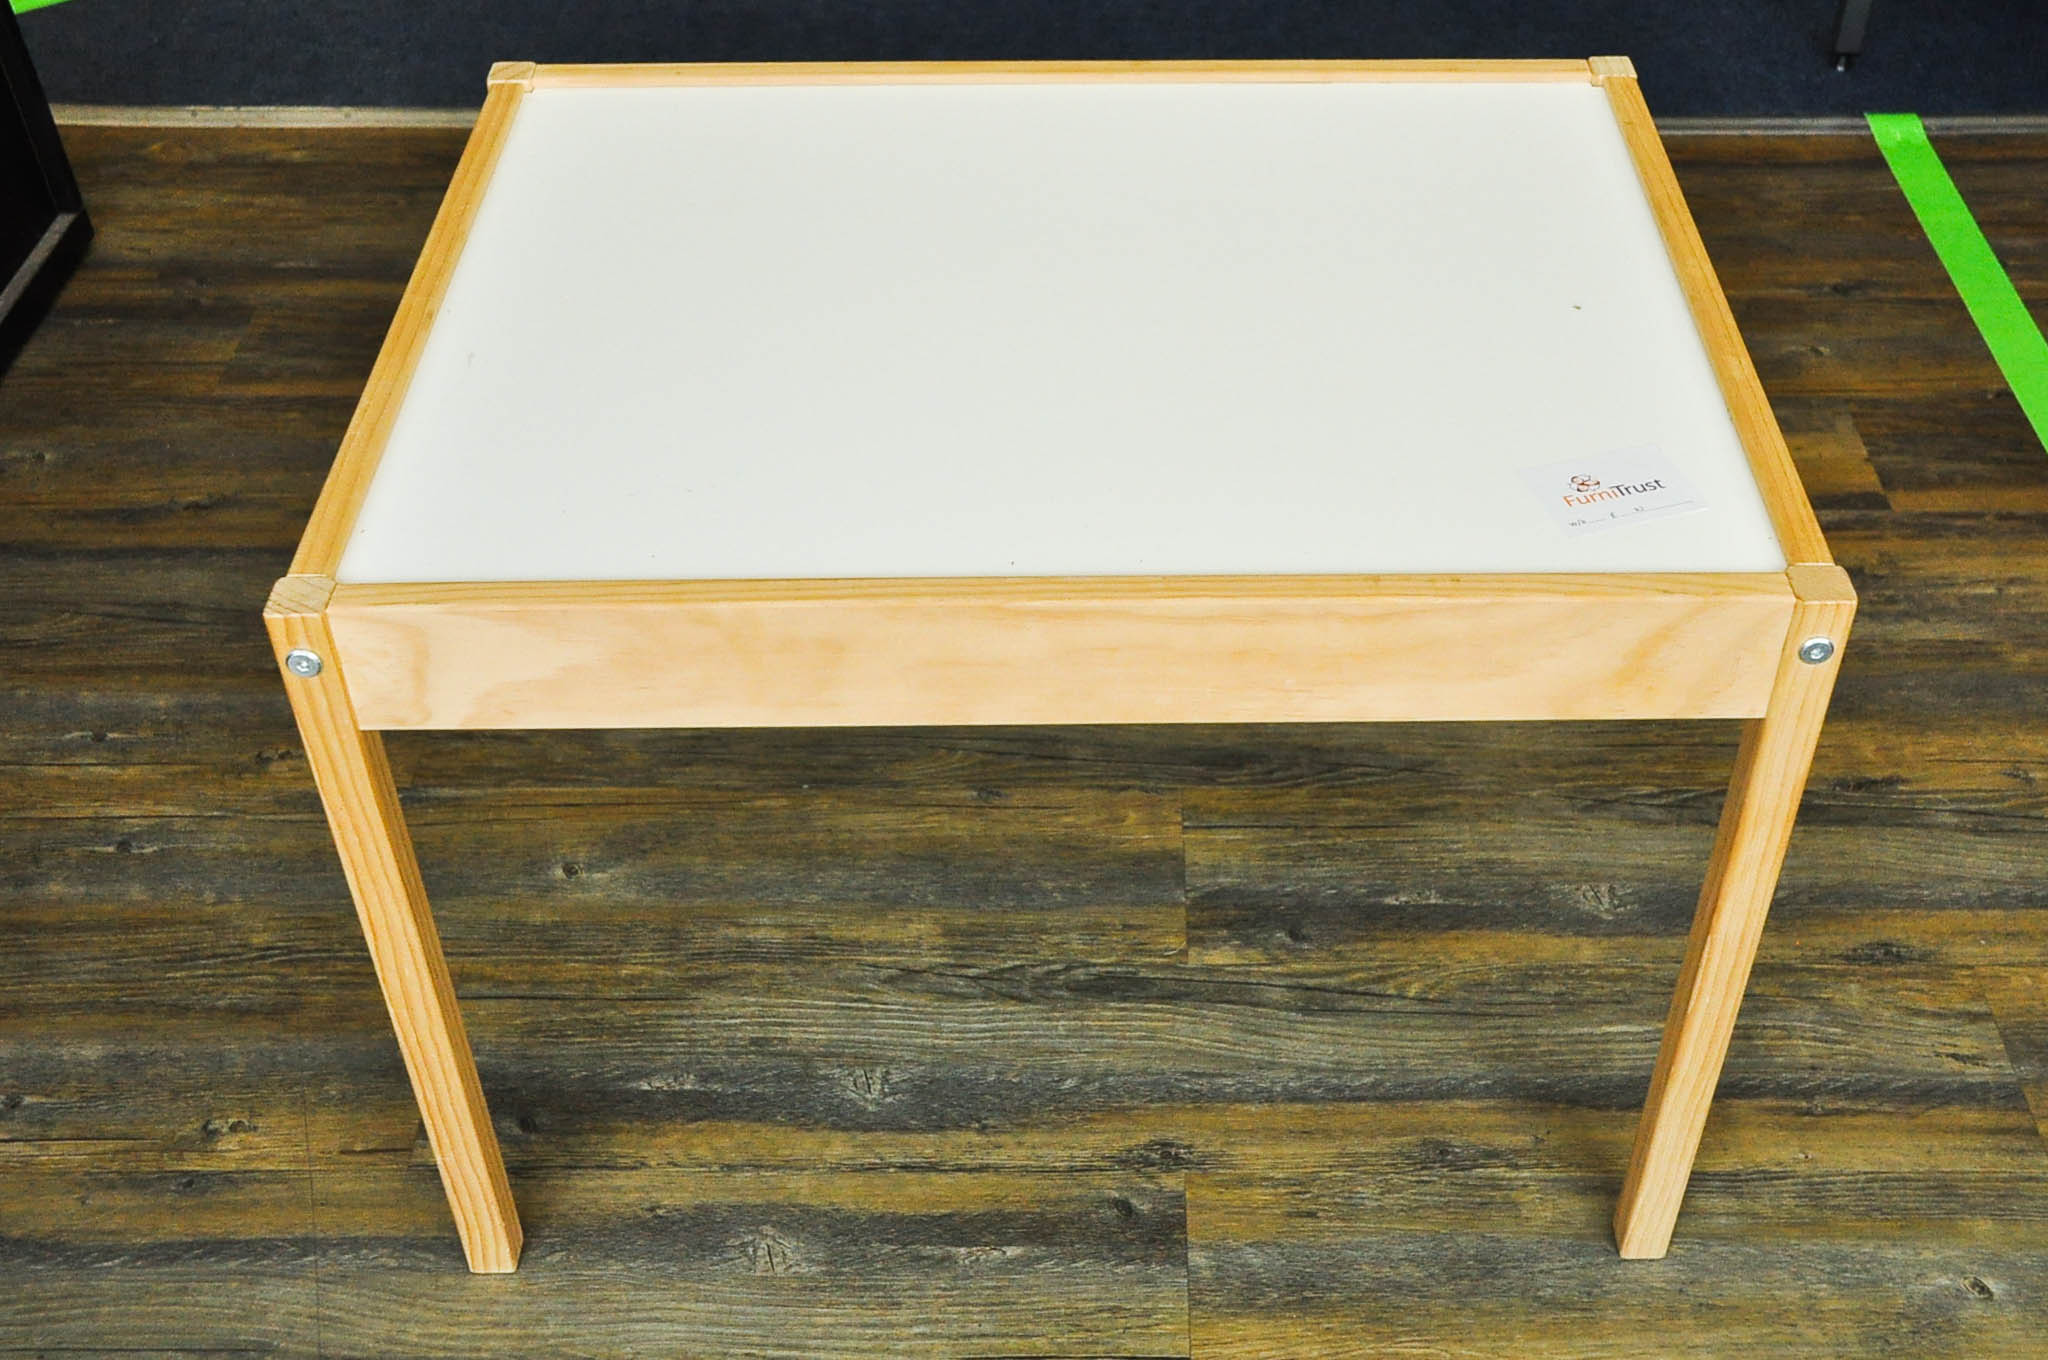 Ikea childs desk, 49cm deep x 64cm wide x 46cm tall